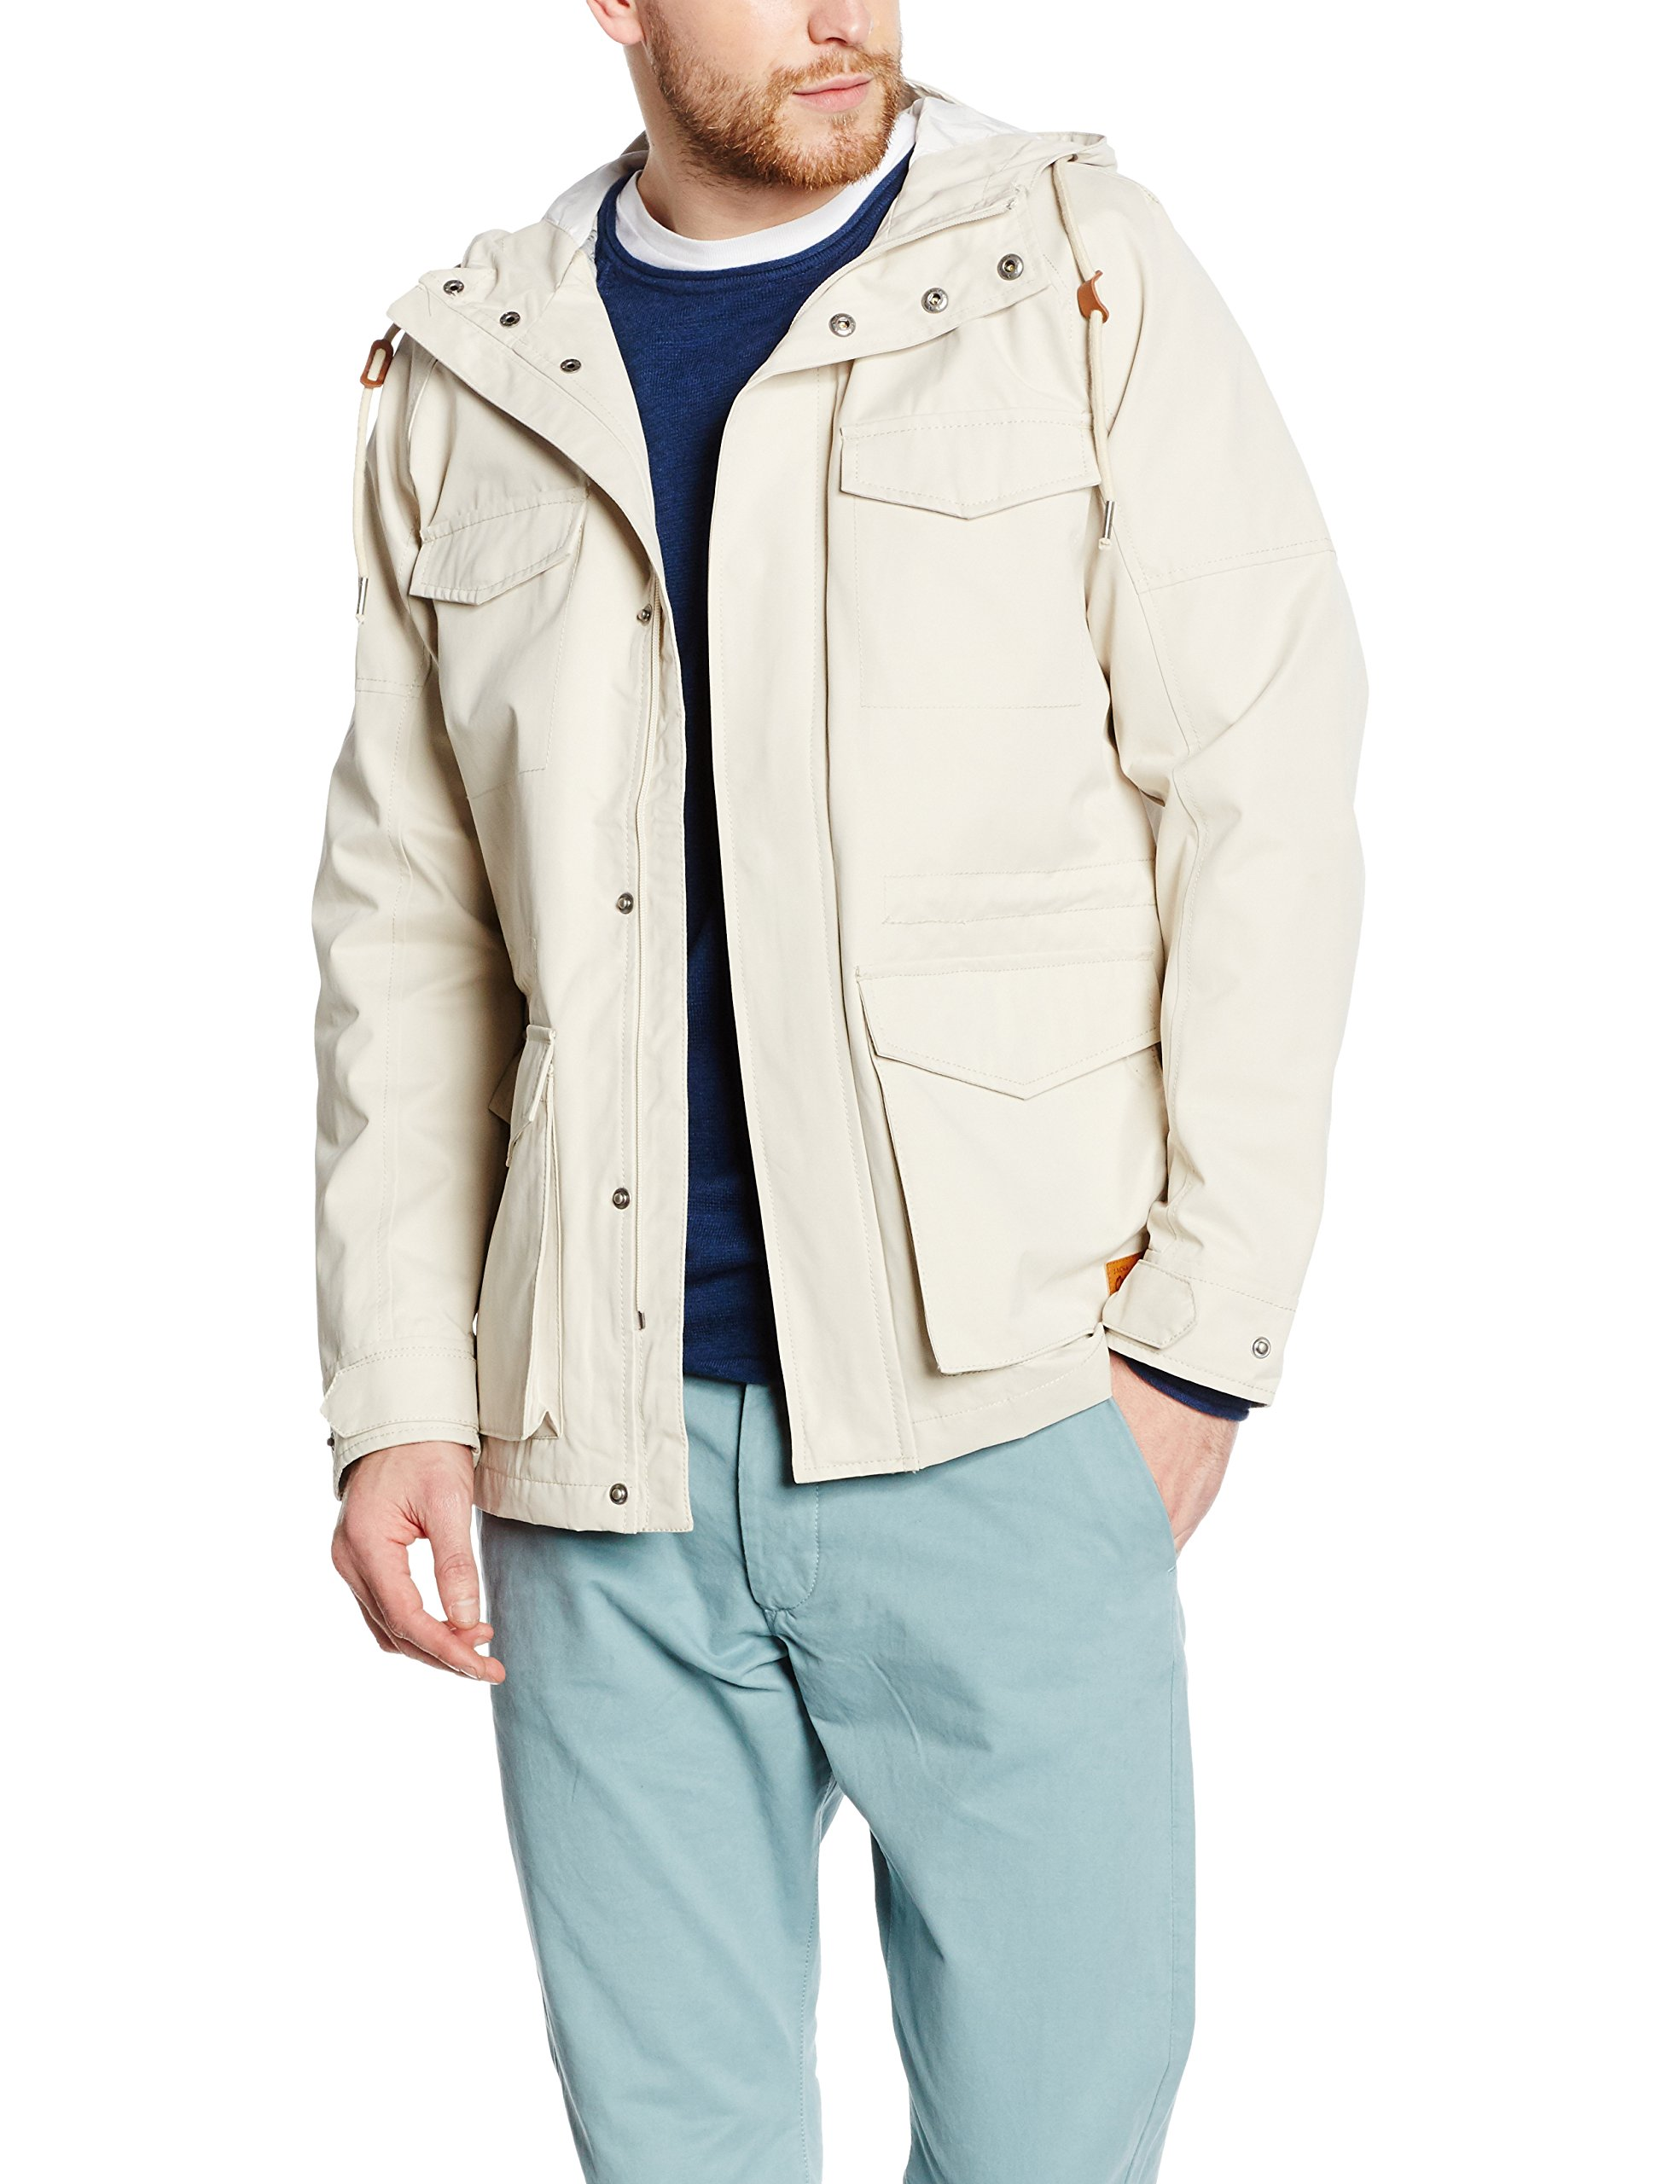 regLarge Jjorshow Homme Jackamp; BlousonEcruElfenbeinrainy Day Jones Jacket Fit SUVpzMGq